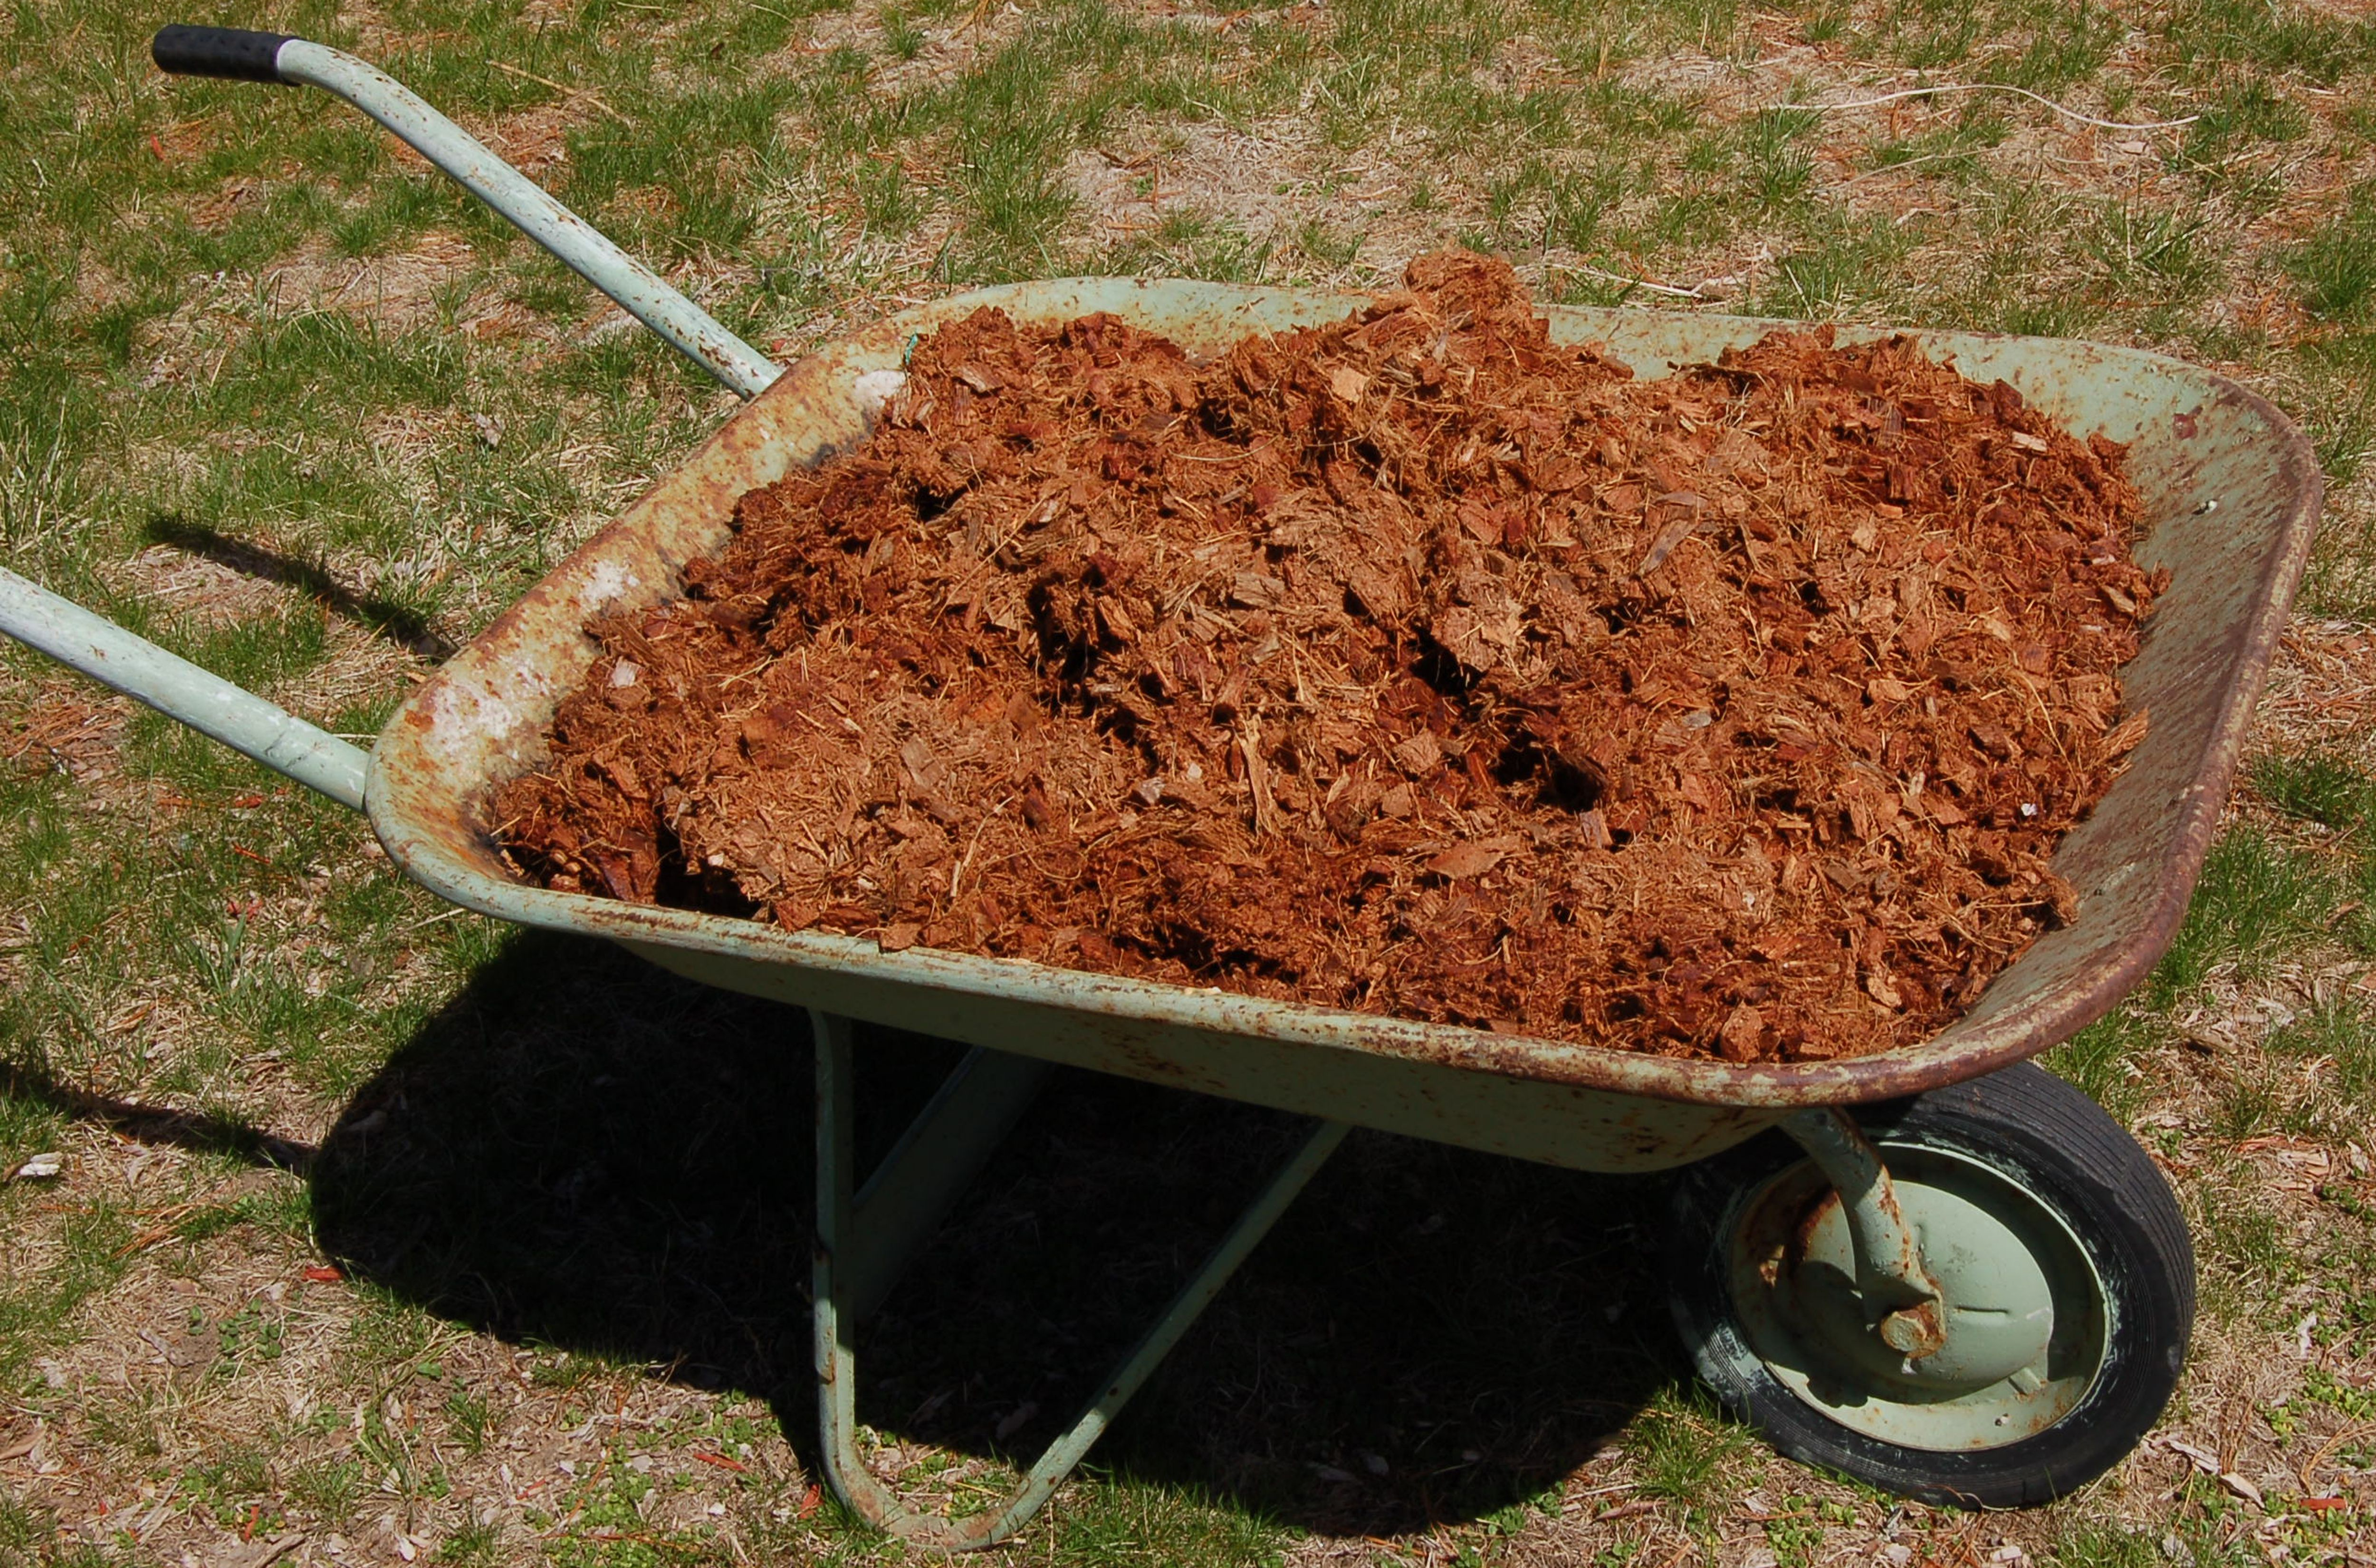 care garden mulch stones livonia bandits grass maintenance lawn and fills services mi